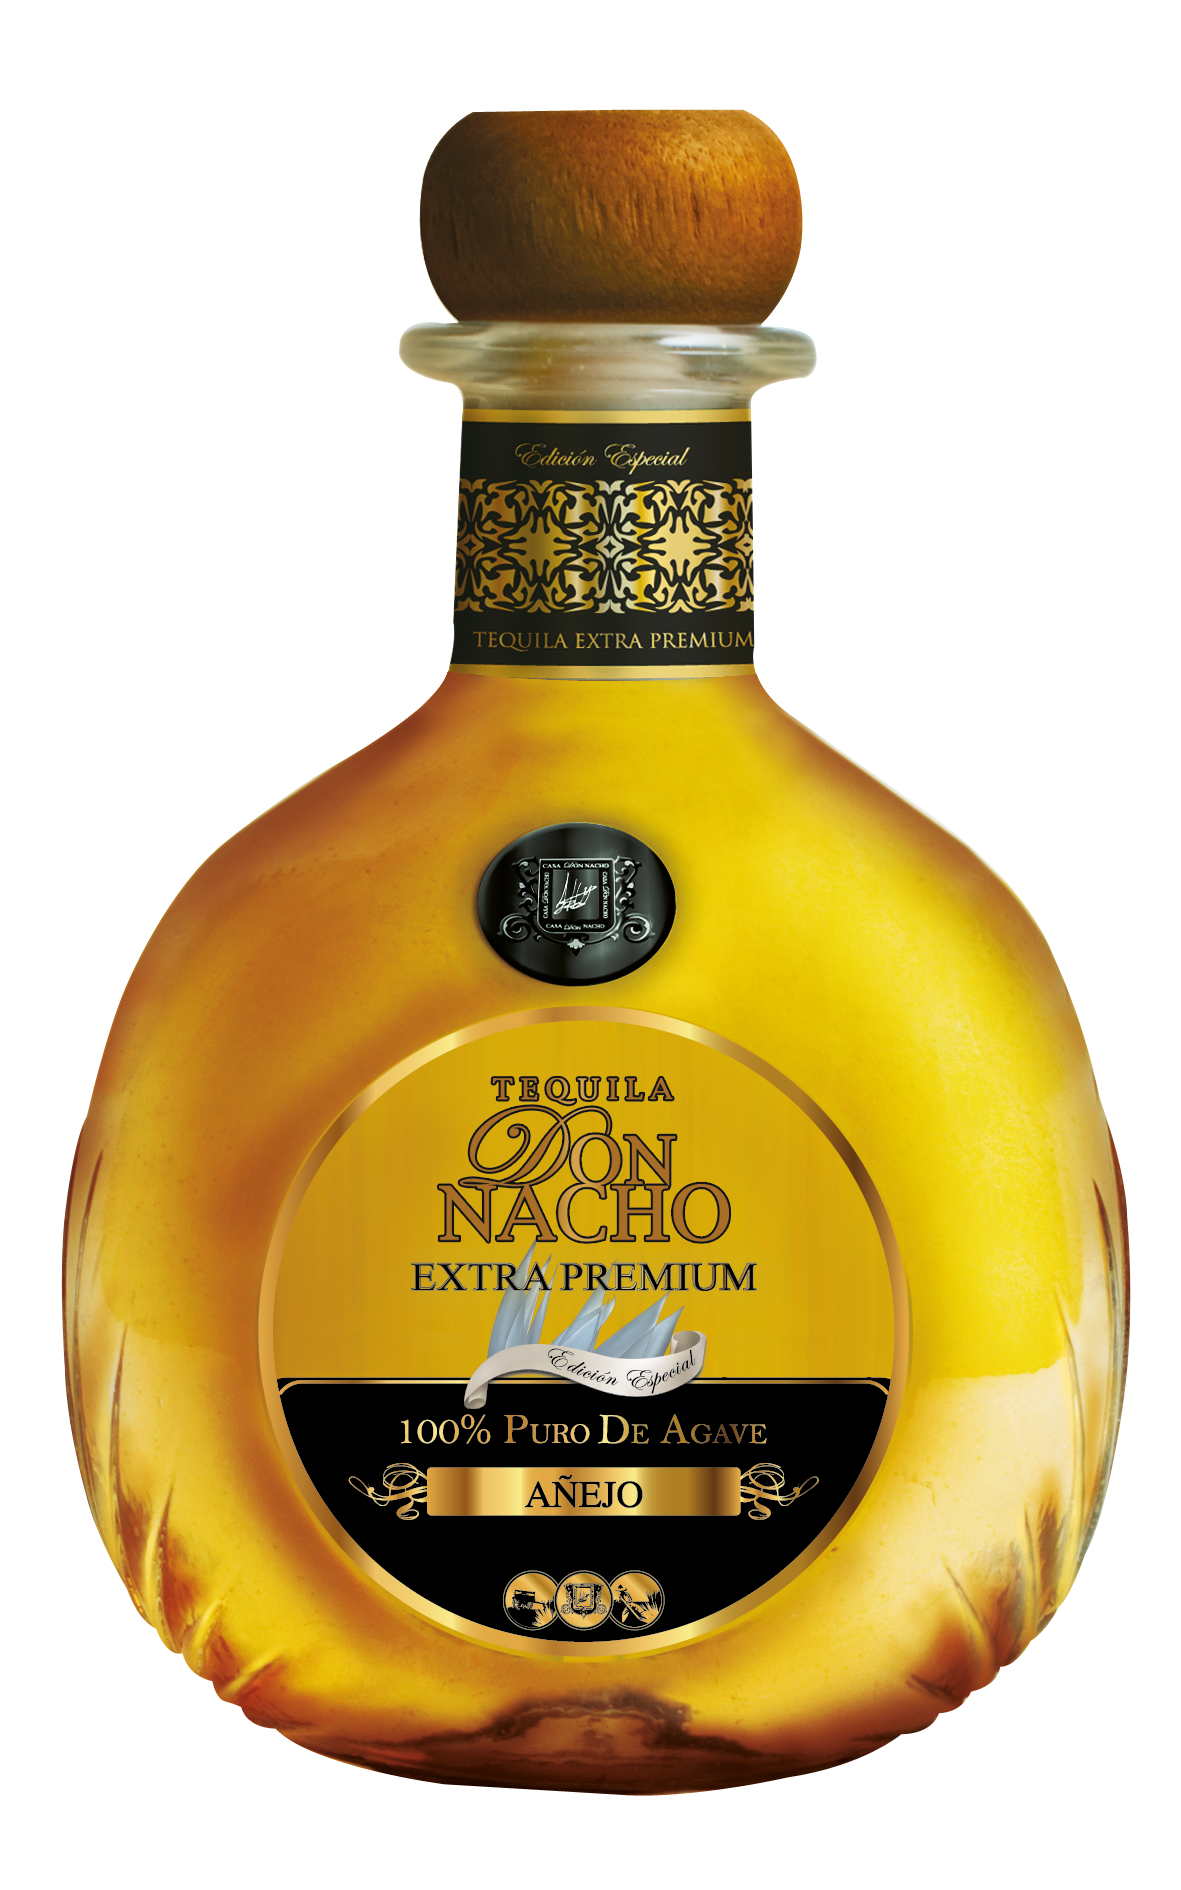 EXTRA PREMIUM ANEJO - Color: Crystaline WhiteOdor: Herbaceous to cooked agaveFlavor: Slight lime tea, so to the palateAppearance: Transparent crystaline